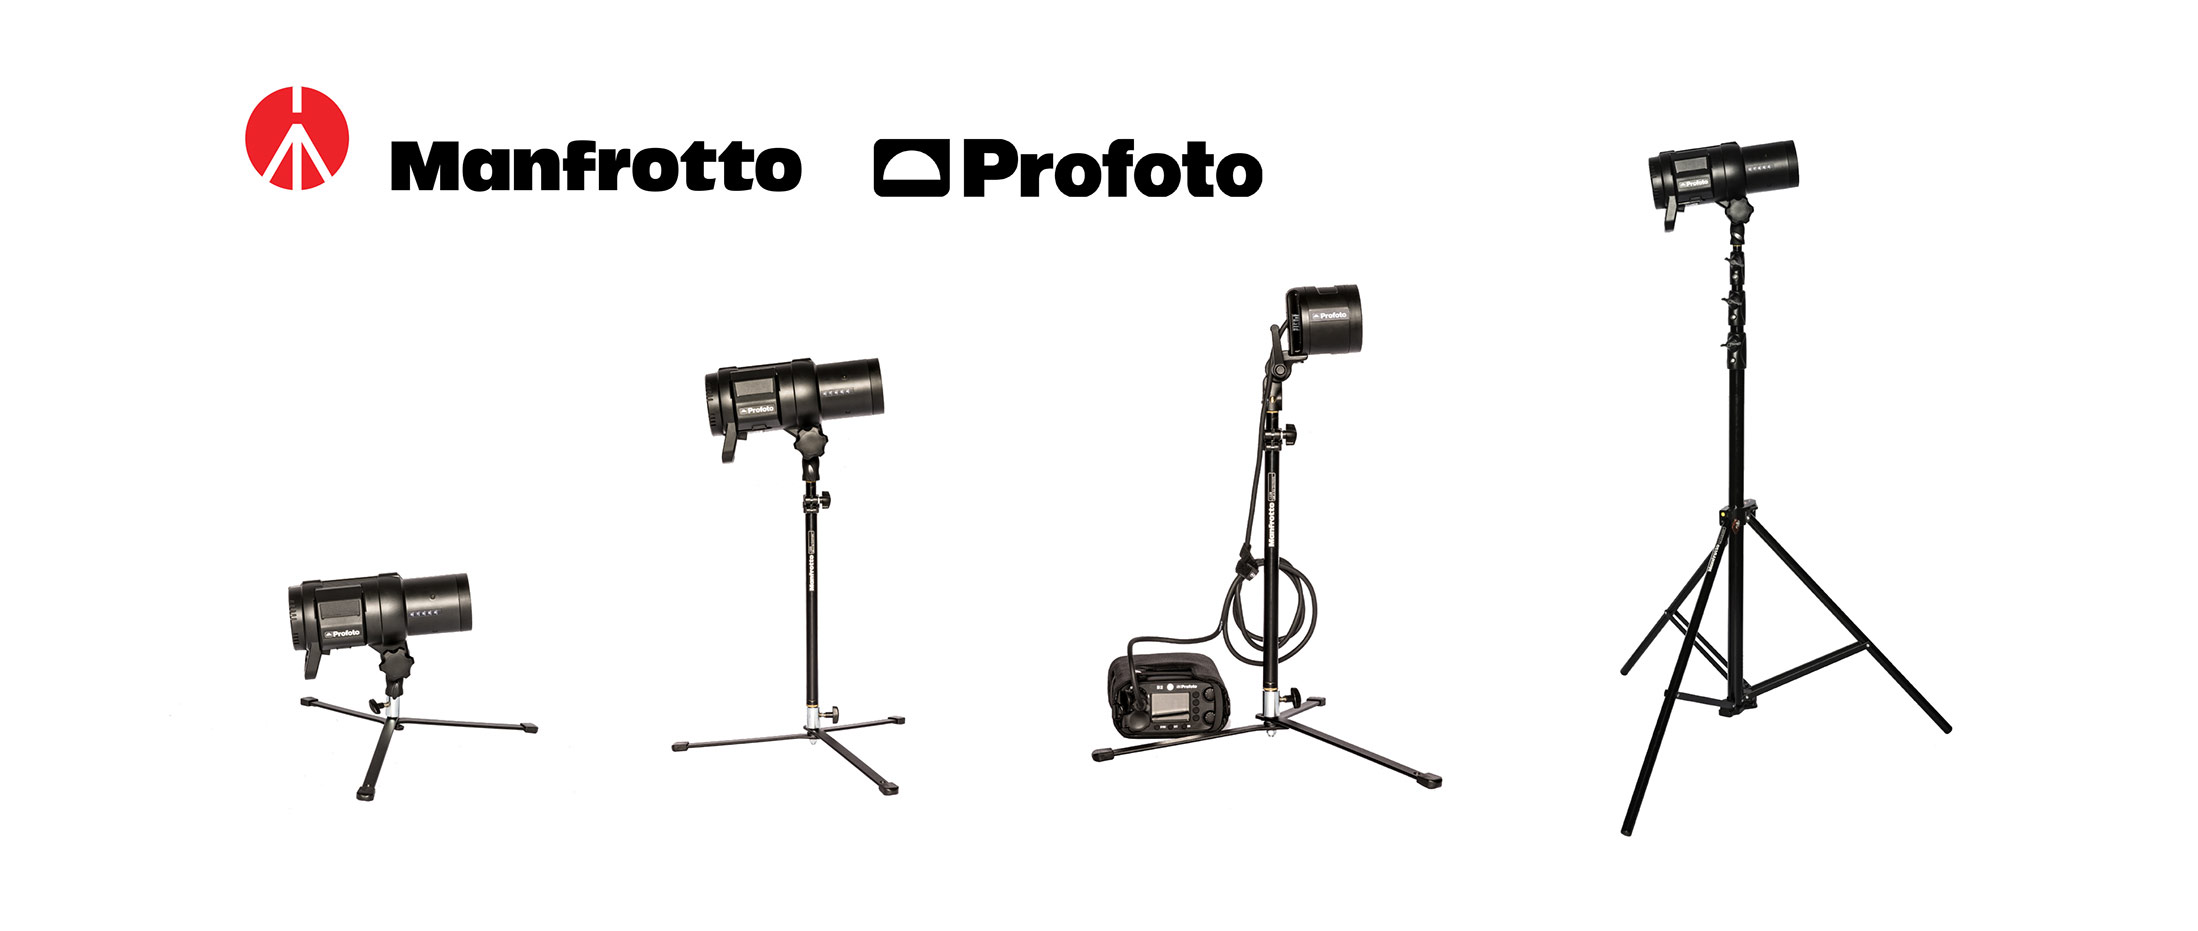 Manfrooto-light-stands.jpg